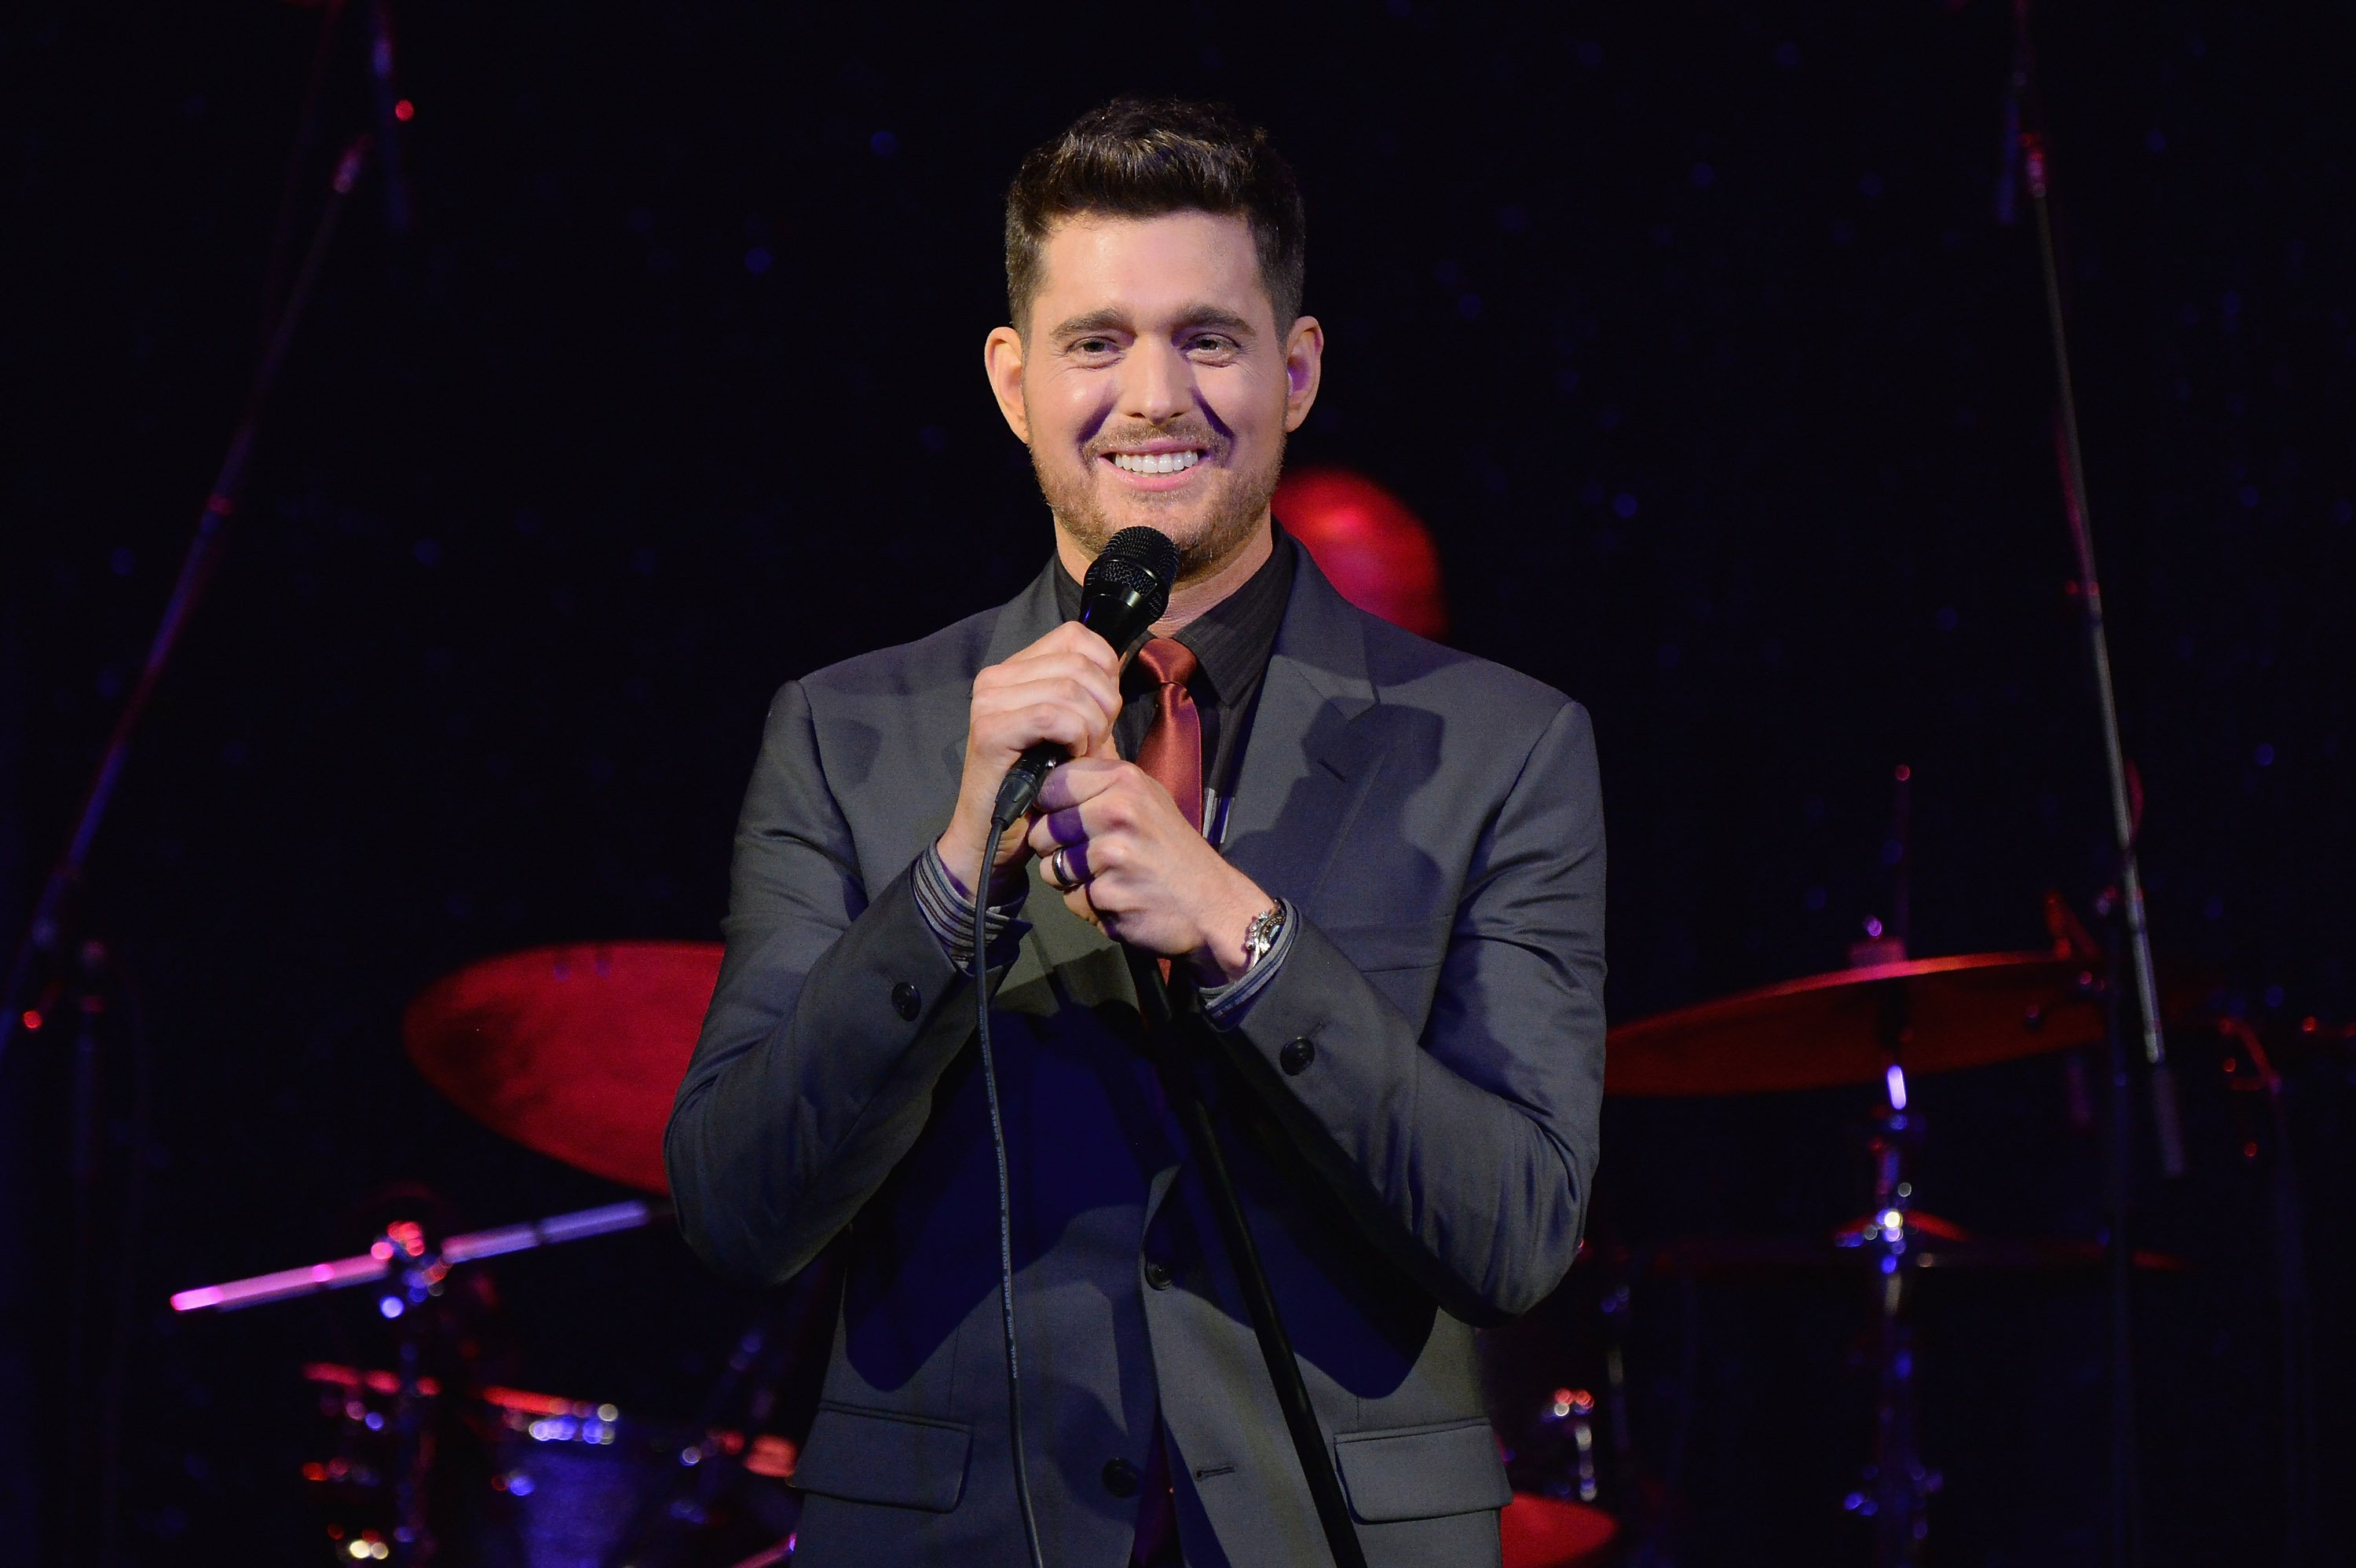 Michael Bublé in concert in New York City on August 24, 2016.   Photo: Getty Images